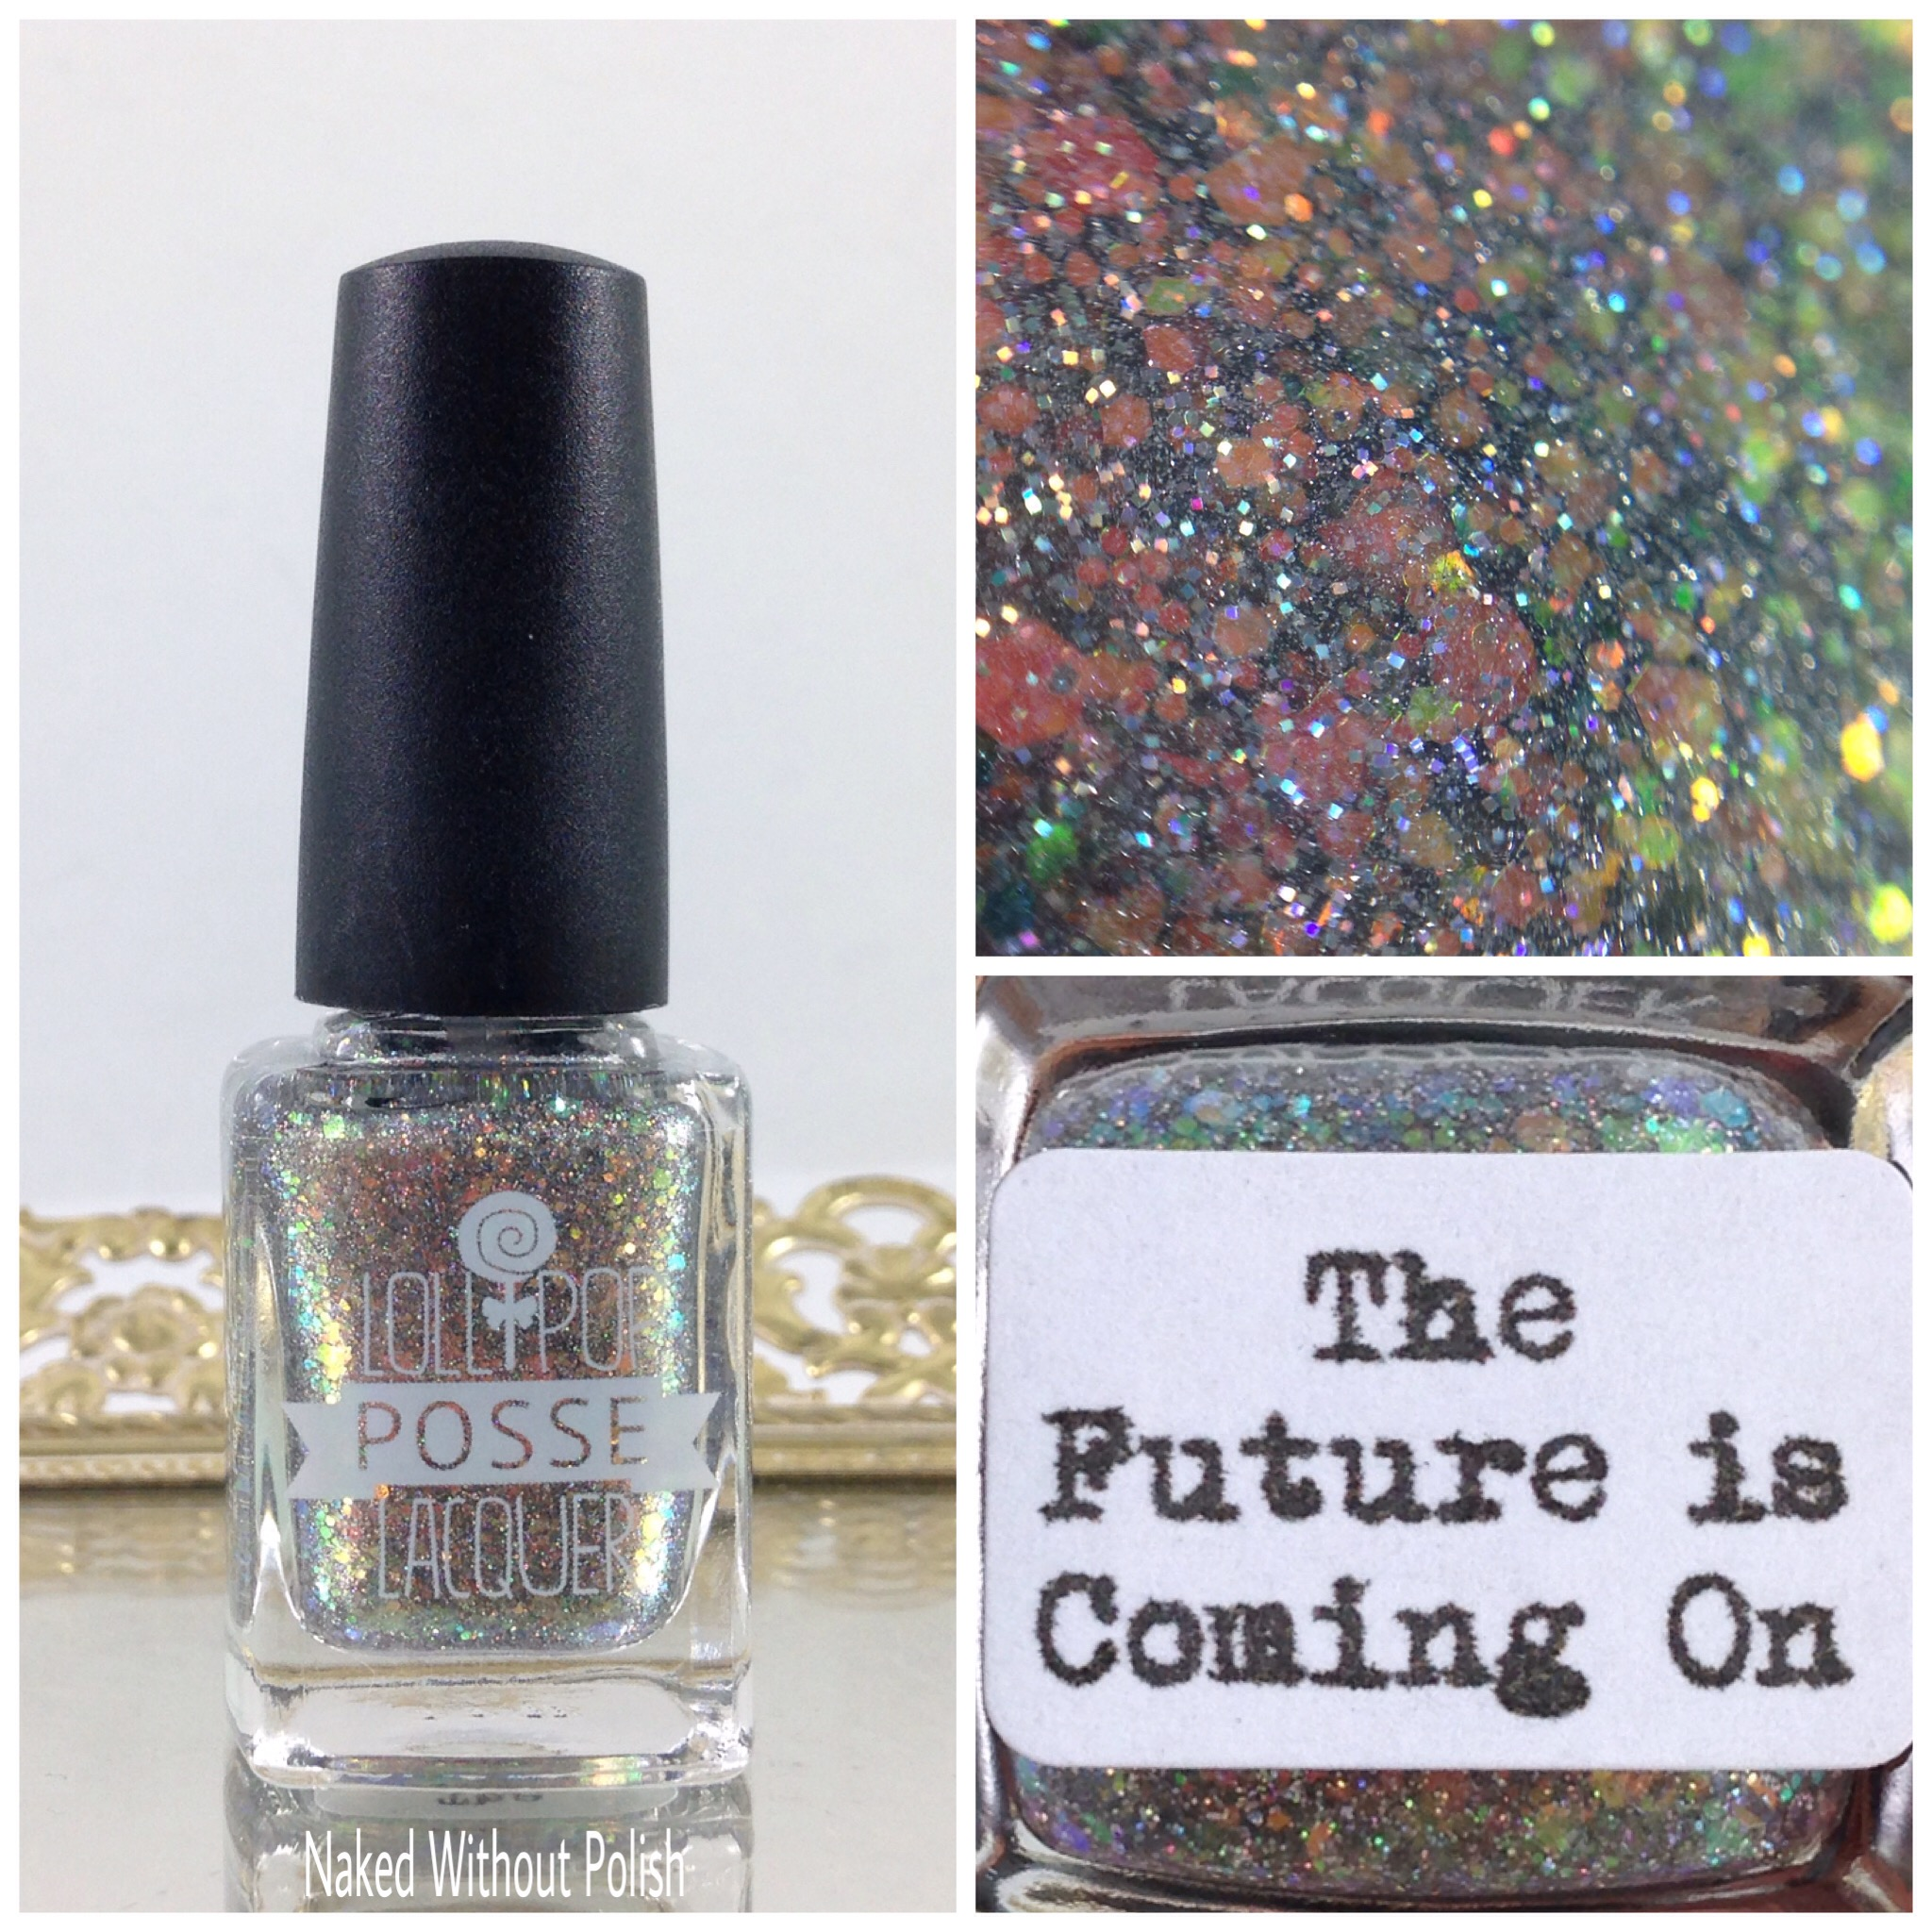 Lollipop-Posse-Lacquer-The-Future-is-Coming-On-1